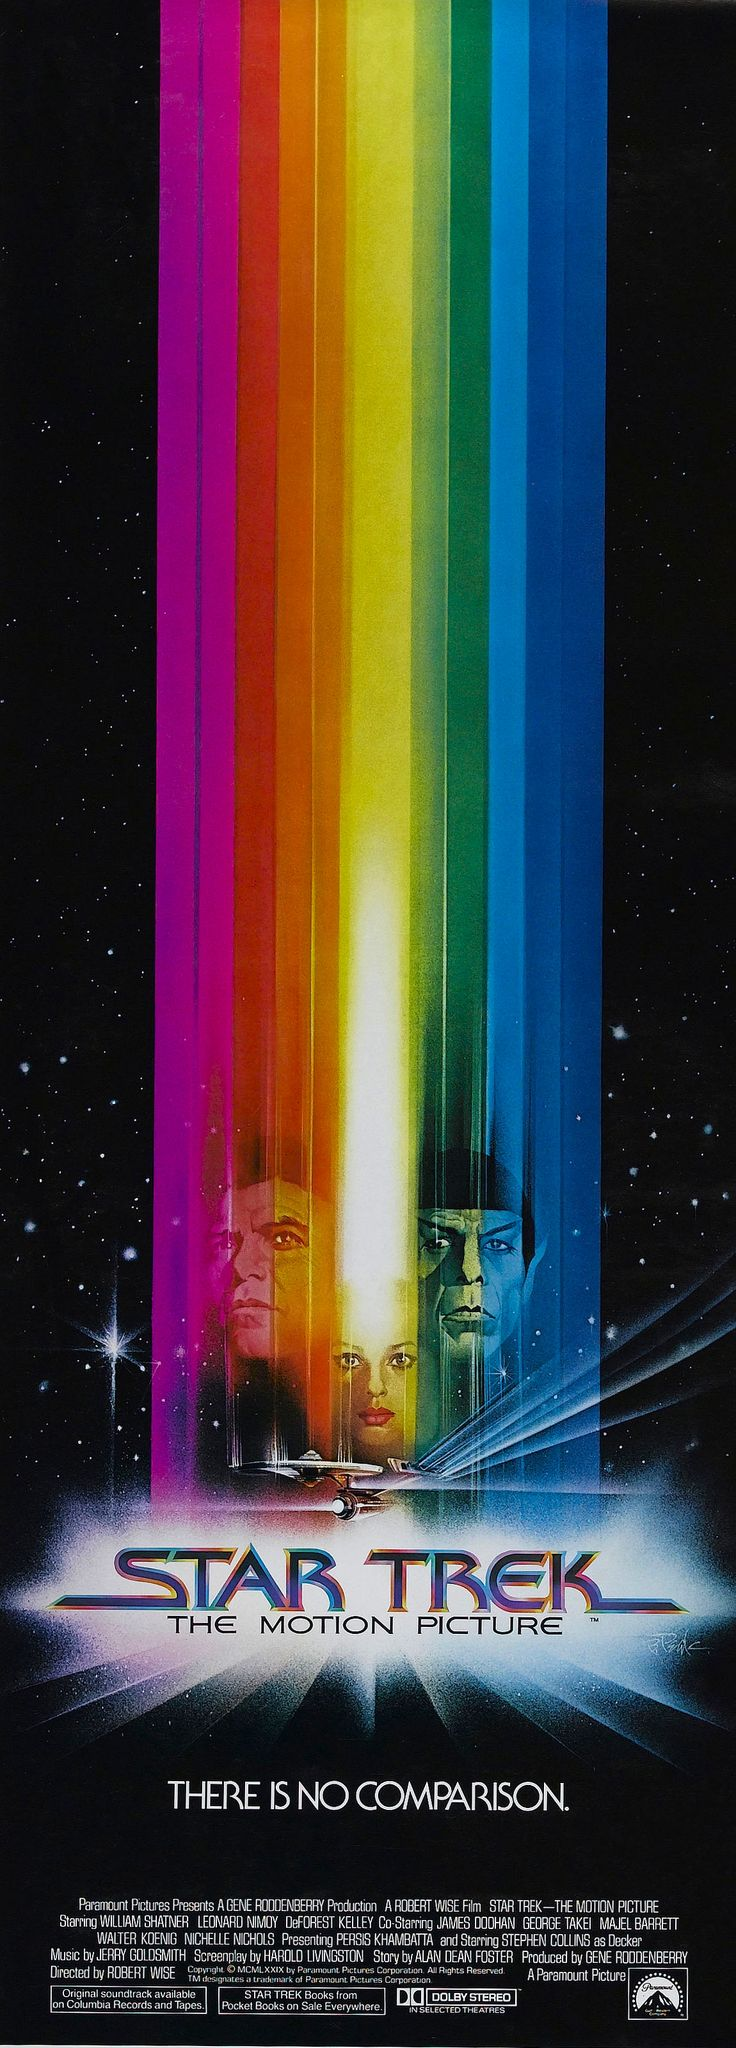 ST TOS was cancelled in 1969, after only 3 years. NBC thought that was the end of it. It took 9 years, but us Trekkies finally won. I felt a smug feeling of triumph, as we walked into the theater to see this movie back in '79.  I still feel like the fans really stuck it to NBC!!